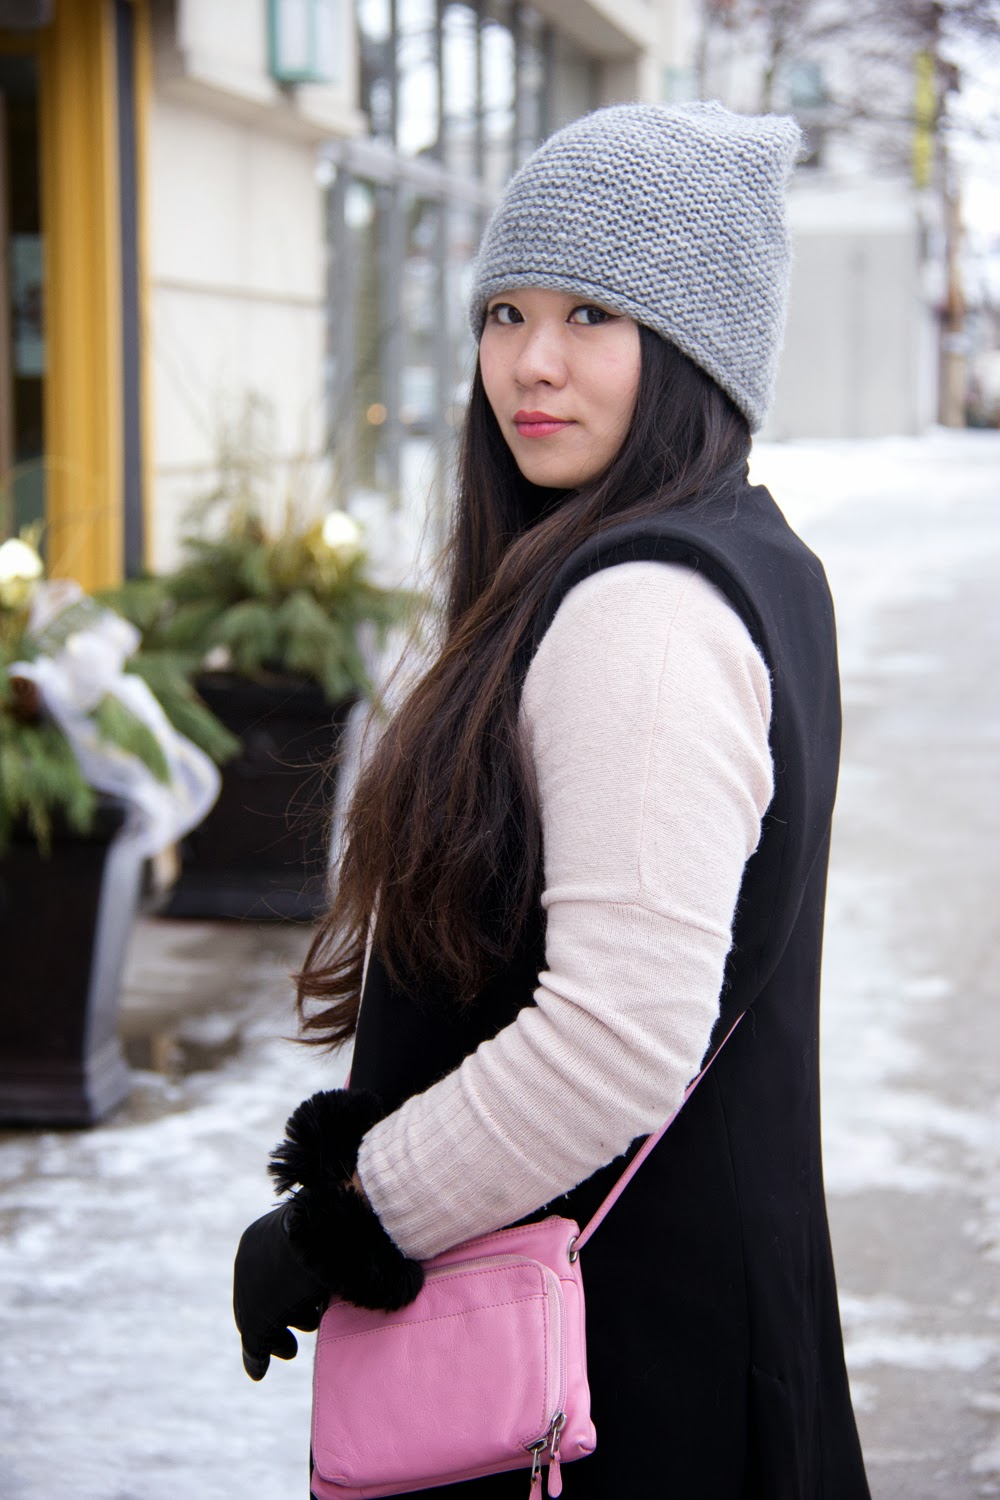 Zara-Grey-Beanie, Black-Sleeveless-Blazer, Light-Pink-Cardigan, Street-Style